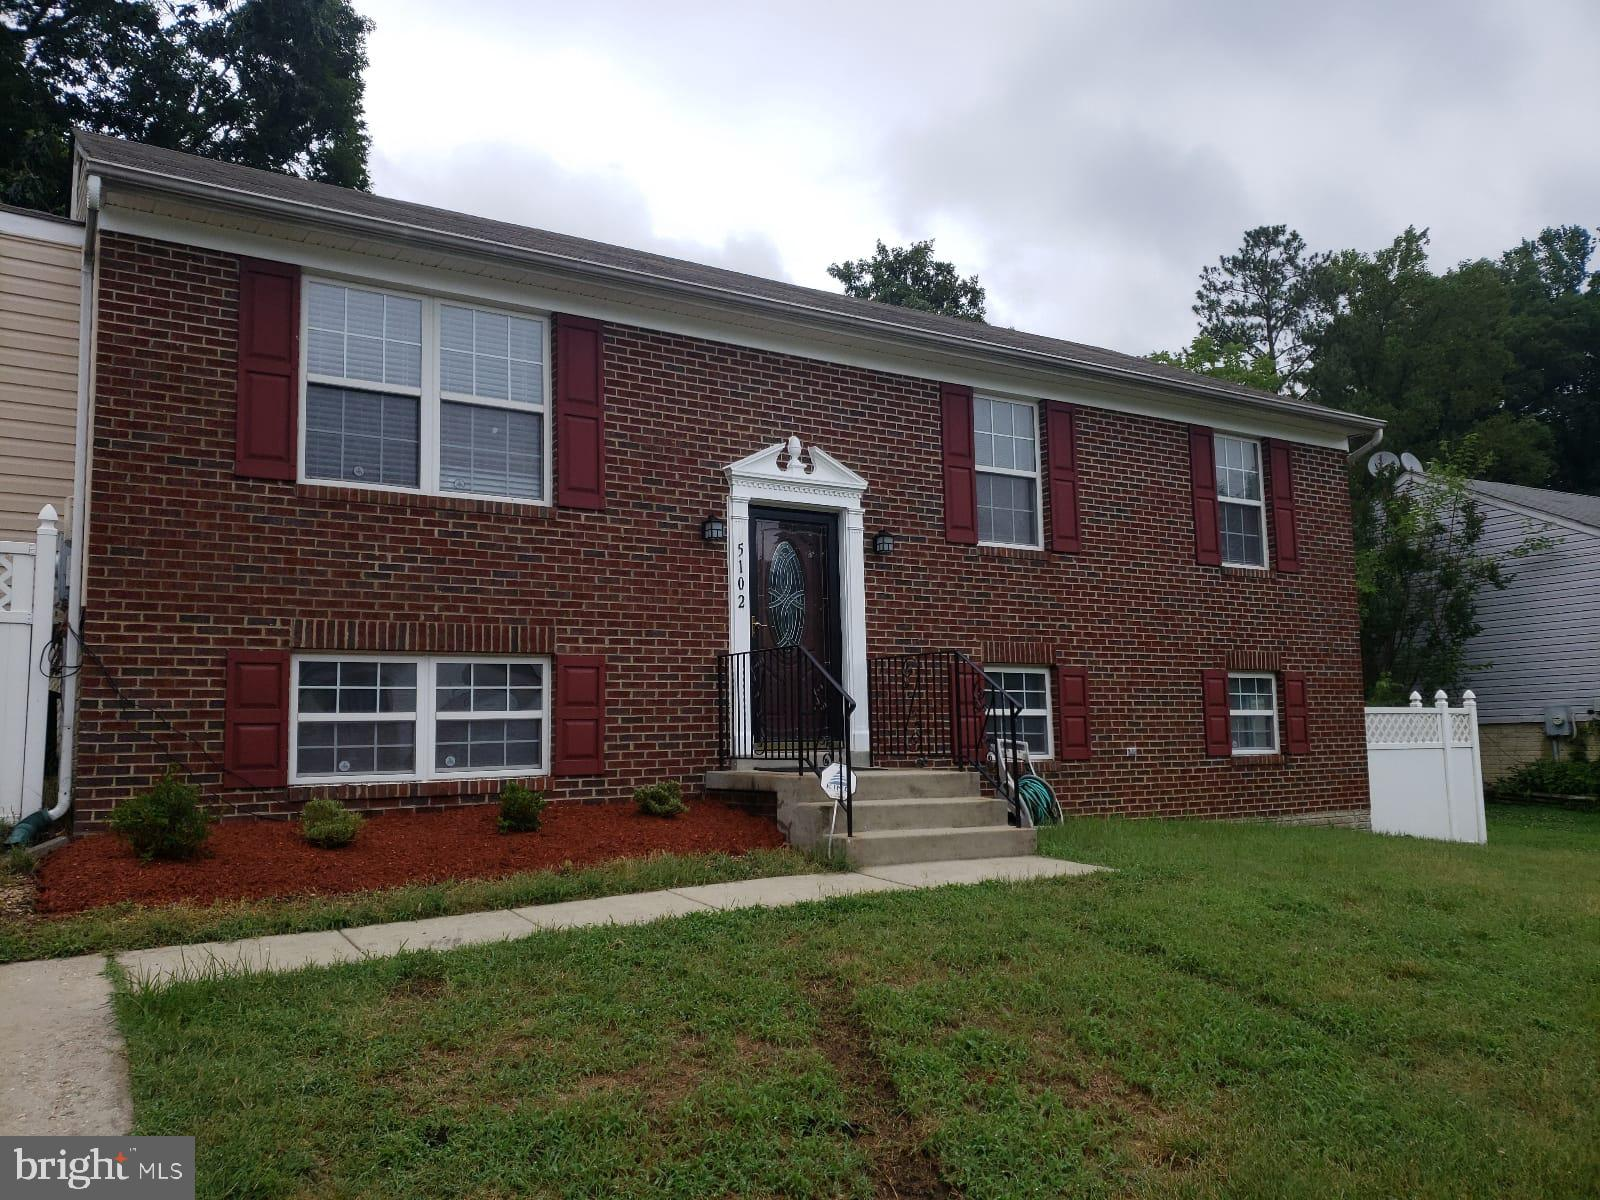 5102 LANSING DRIVE, TEMPLE HILLS, MD 20748